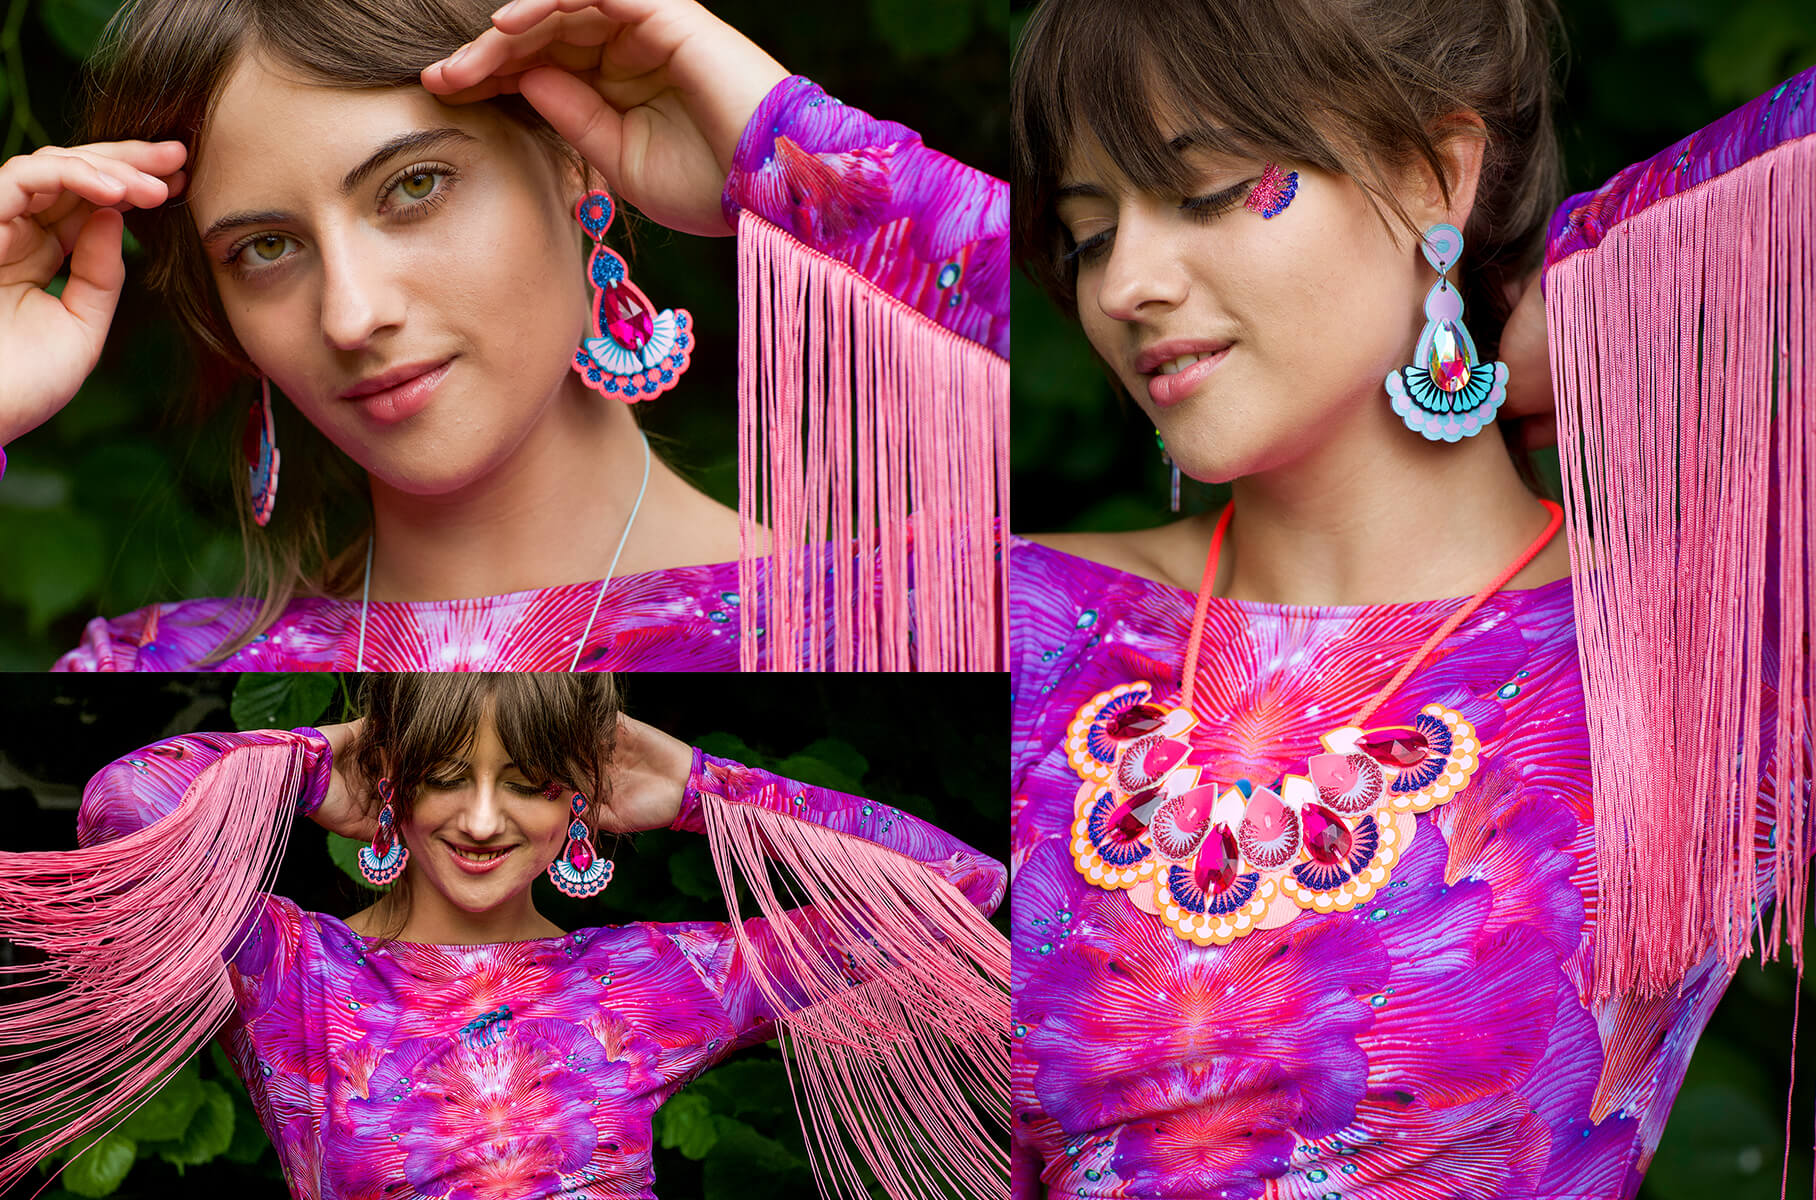 This images contains three photographs of a young woman with brown hair and a soft, grown out fringe modelling a pair of dakota rae dust Statement jewel earrings and a bright pink, patterned lycra crop top with long, fluorescent fringe trimmed sleeves. In each images she is posing with her hand behind her head showing off the long fringe.